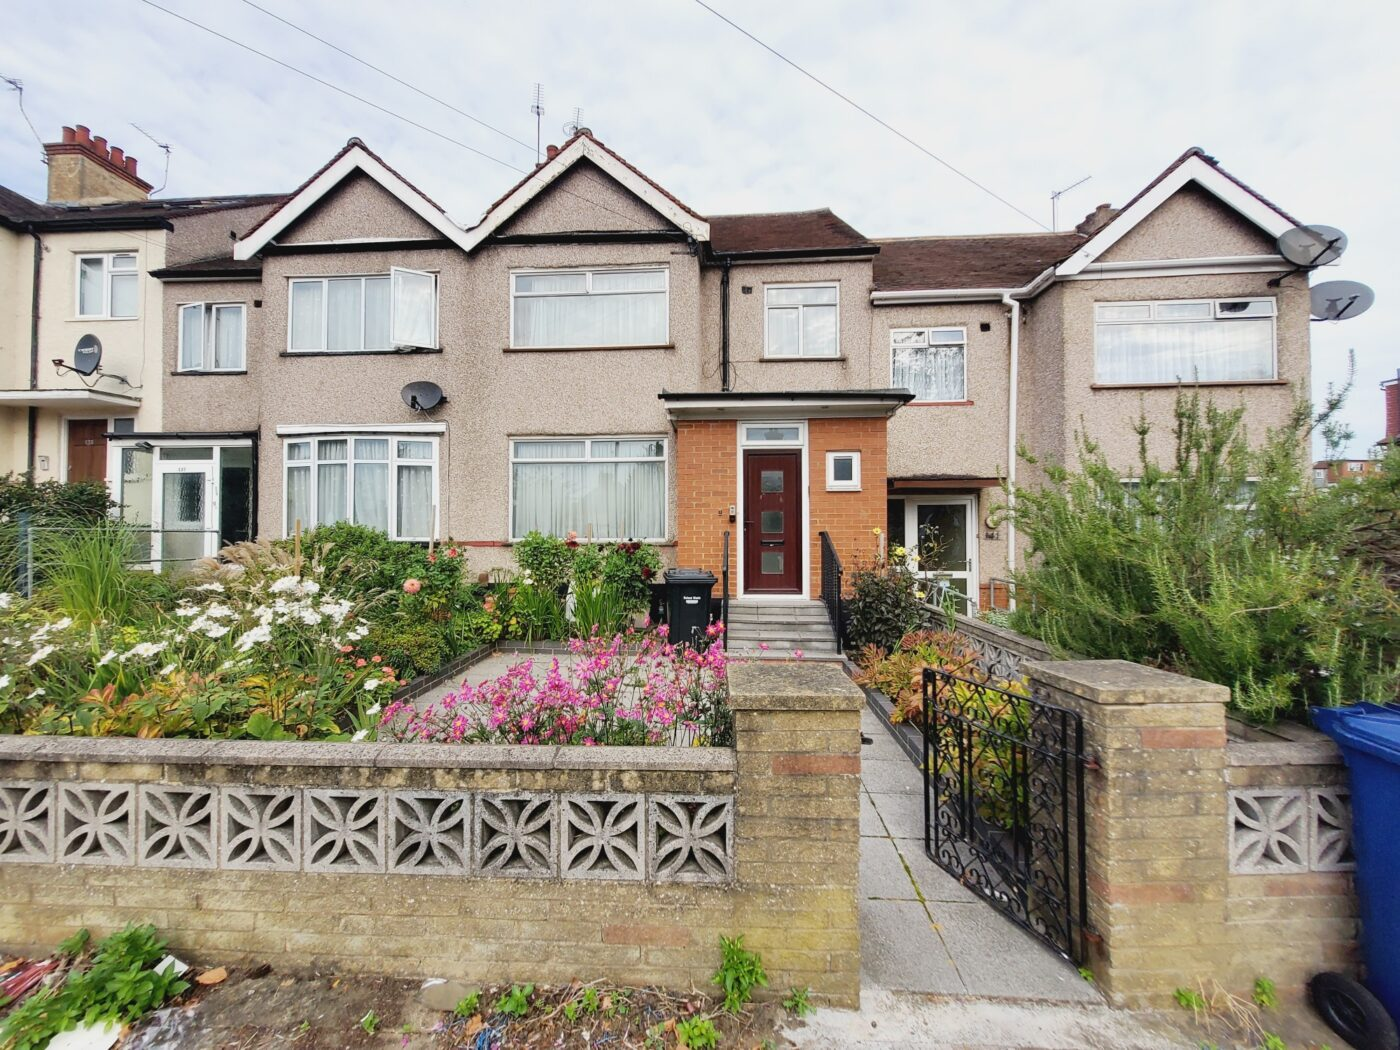 Park Road, Hendon, NW4